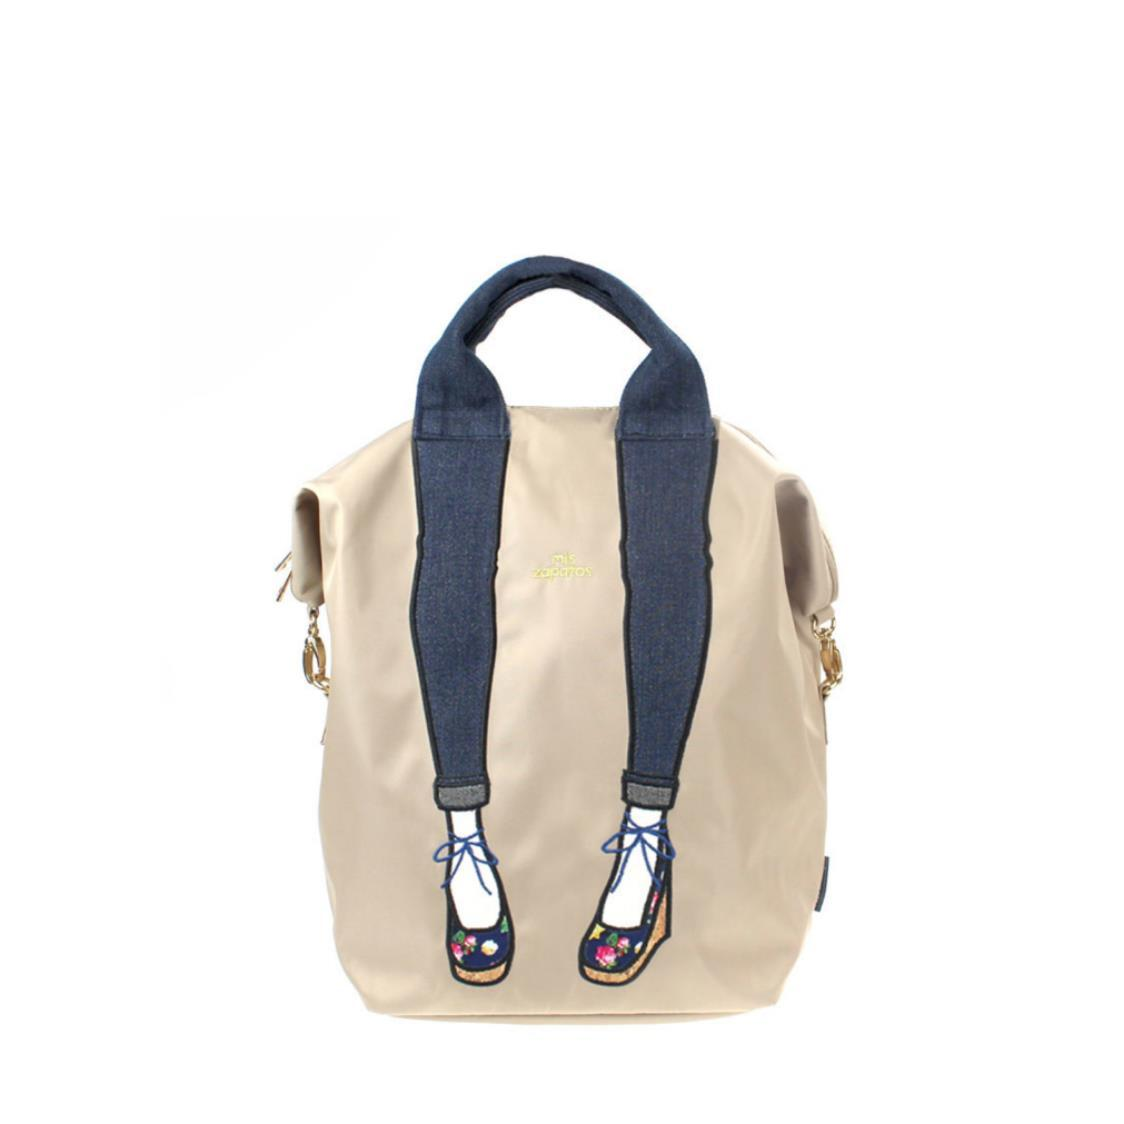 3-Way Use Jeans with Wedges Backpack Beige